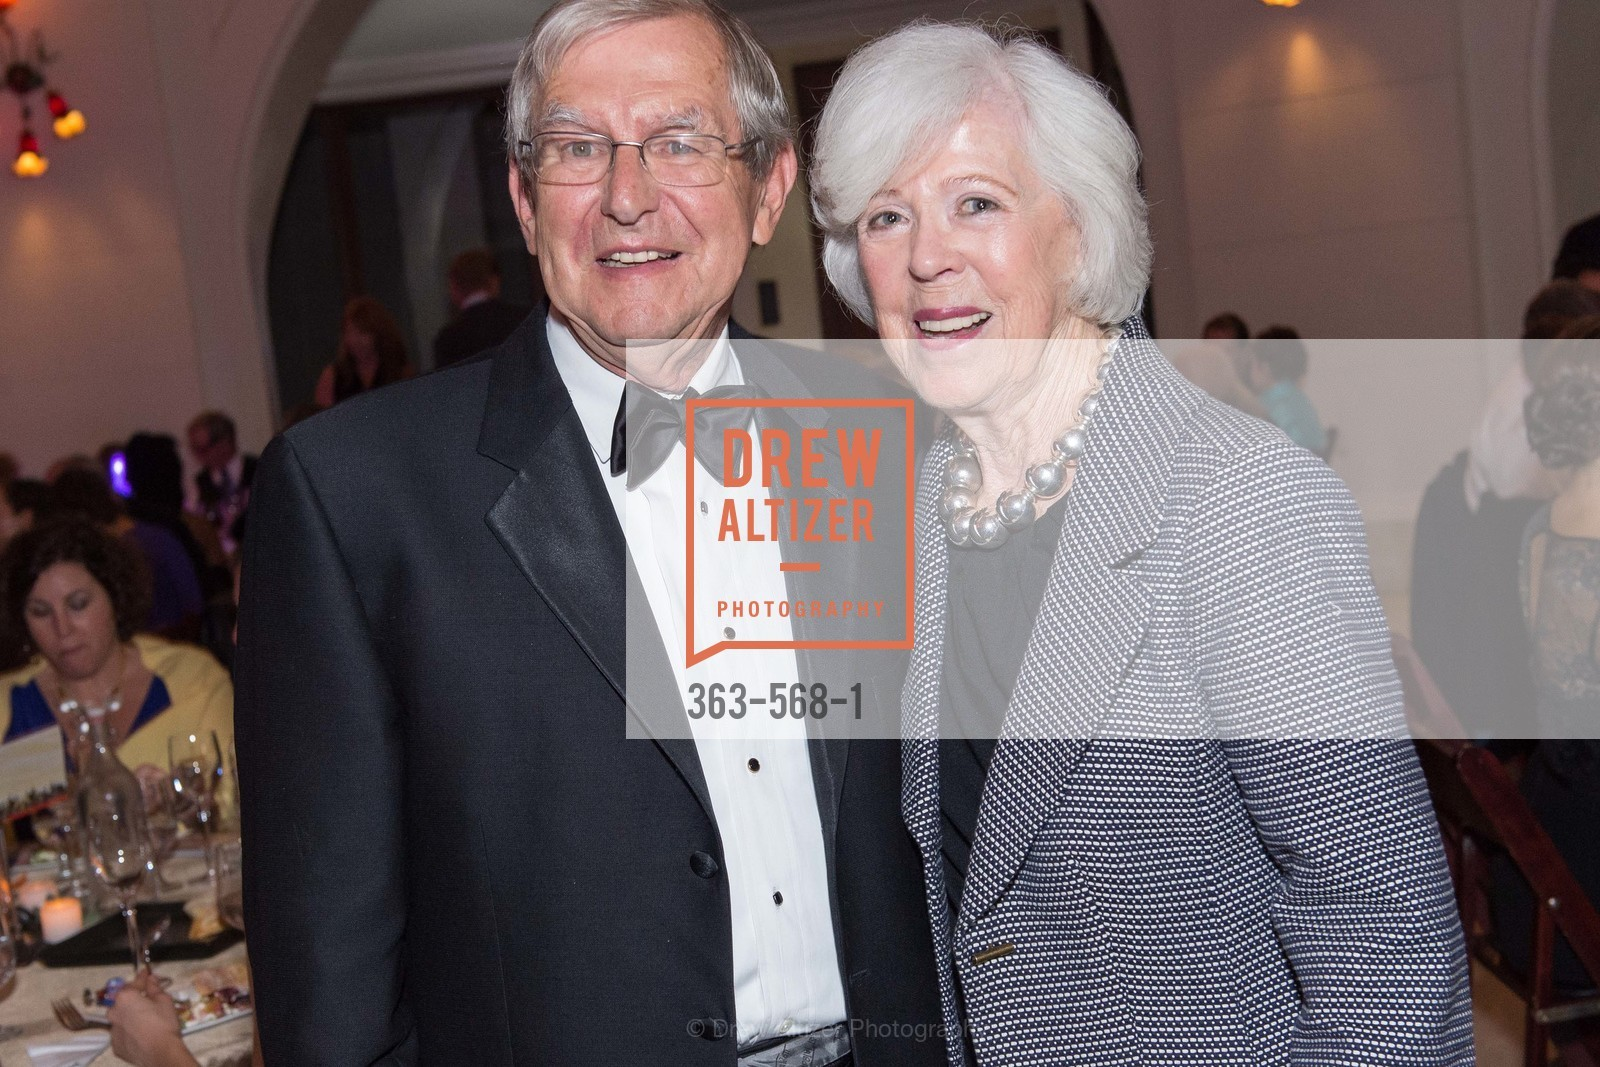 Jack Argabright, Lois Dedemenico, SOTHEBY'S  Hosts a Private Viewing of Highlights from the Collection of MRS. PAUL MELLON, US, September 17th, 2014,Drew Altizer, Drew Altizer Photography, full-service agency, private events, San Francisco photographer, photographer california